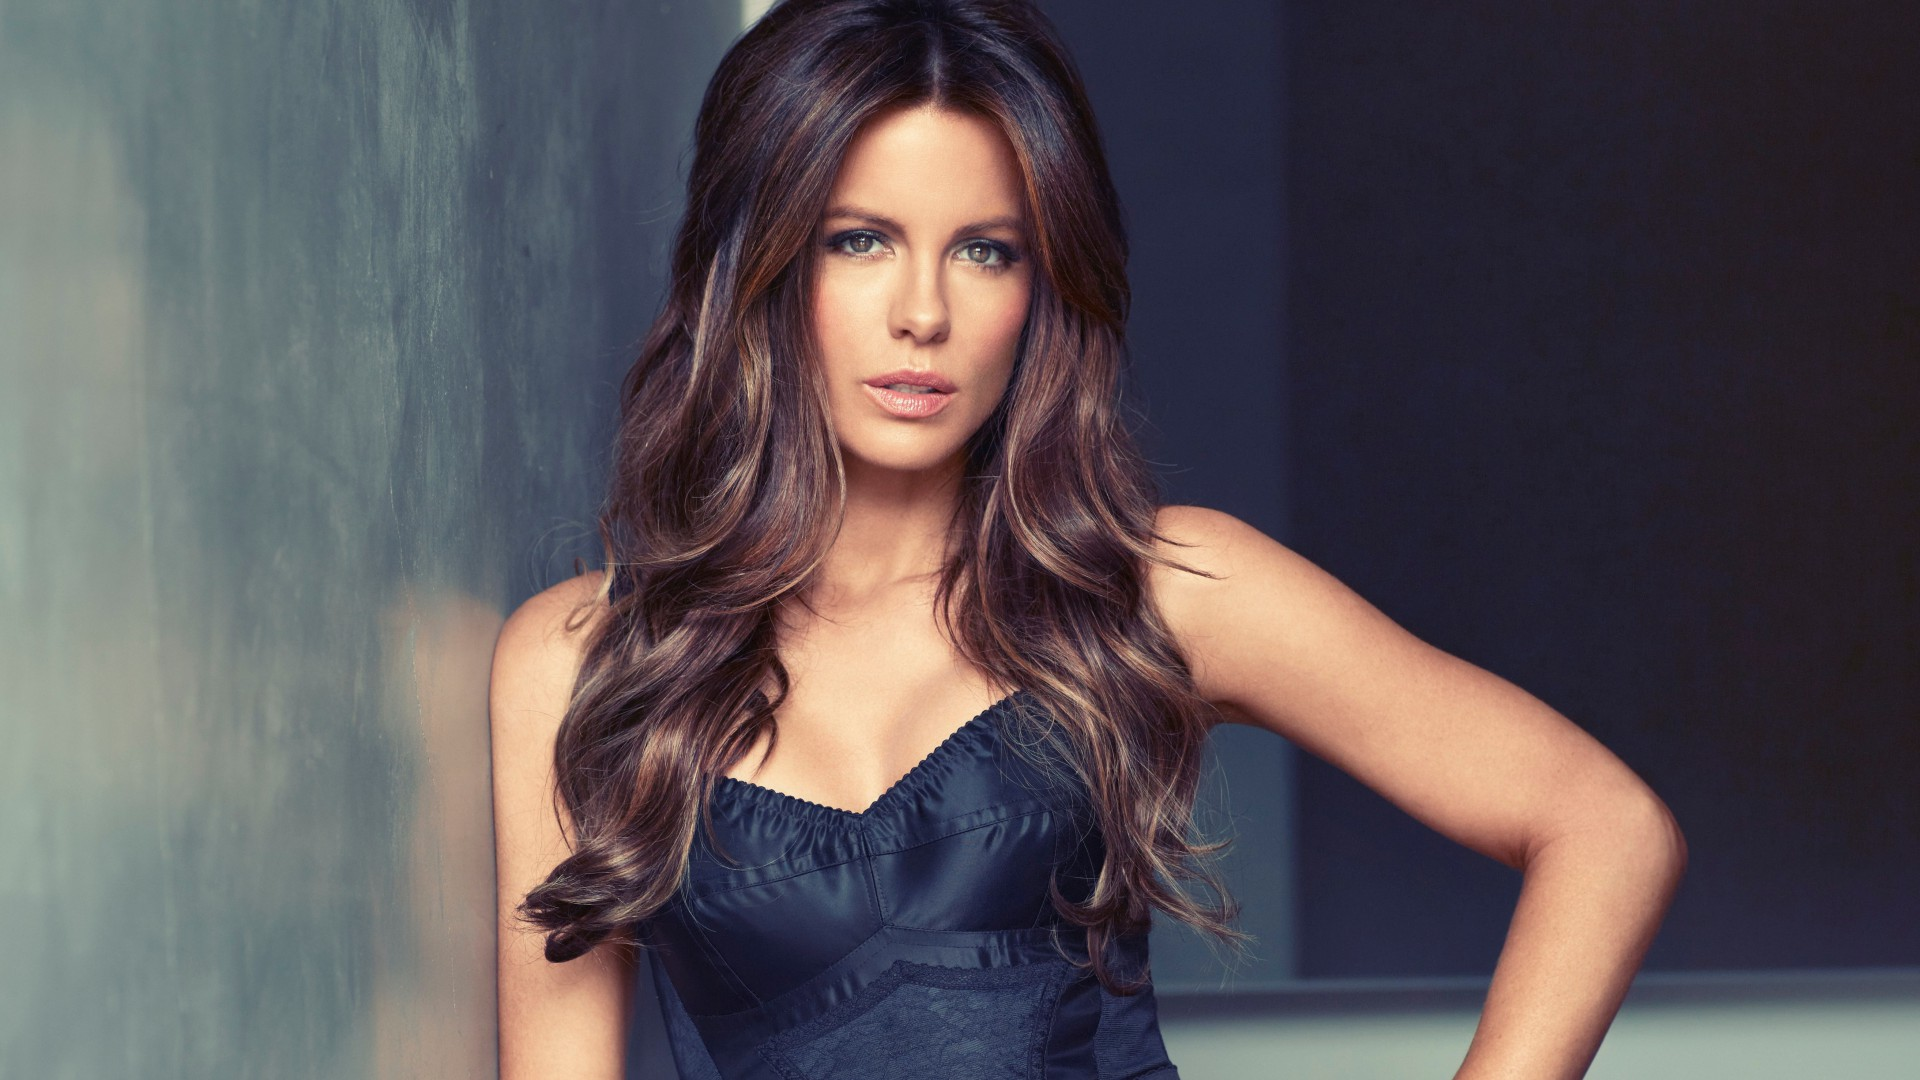 Kate Beckinsale, Most Popular Celebs in 2015, actress, brunette (horizontal)